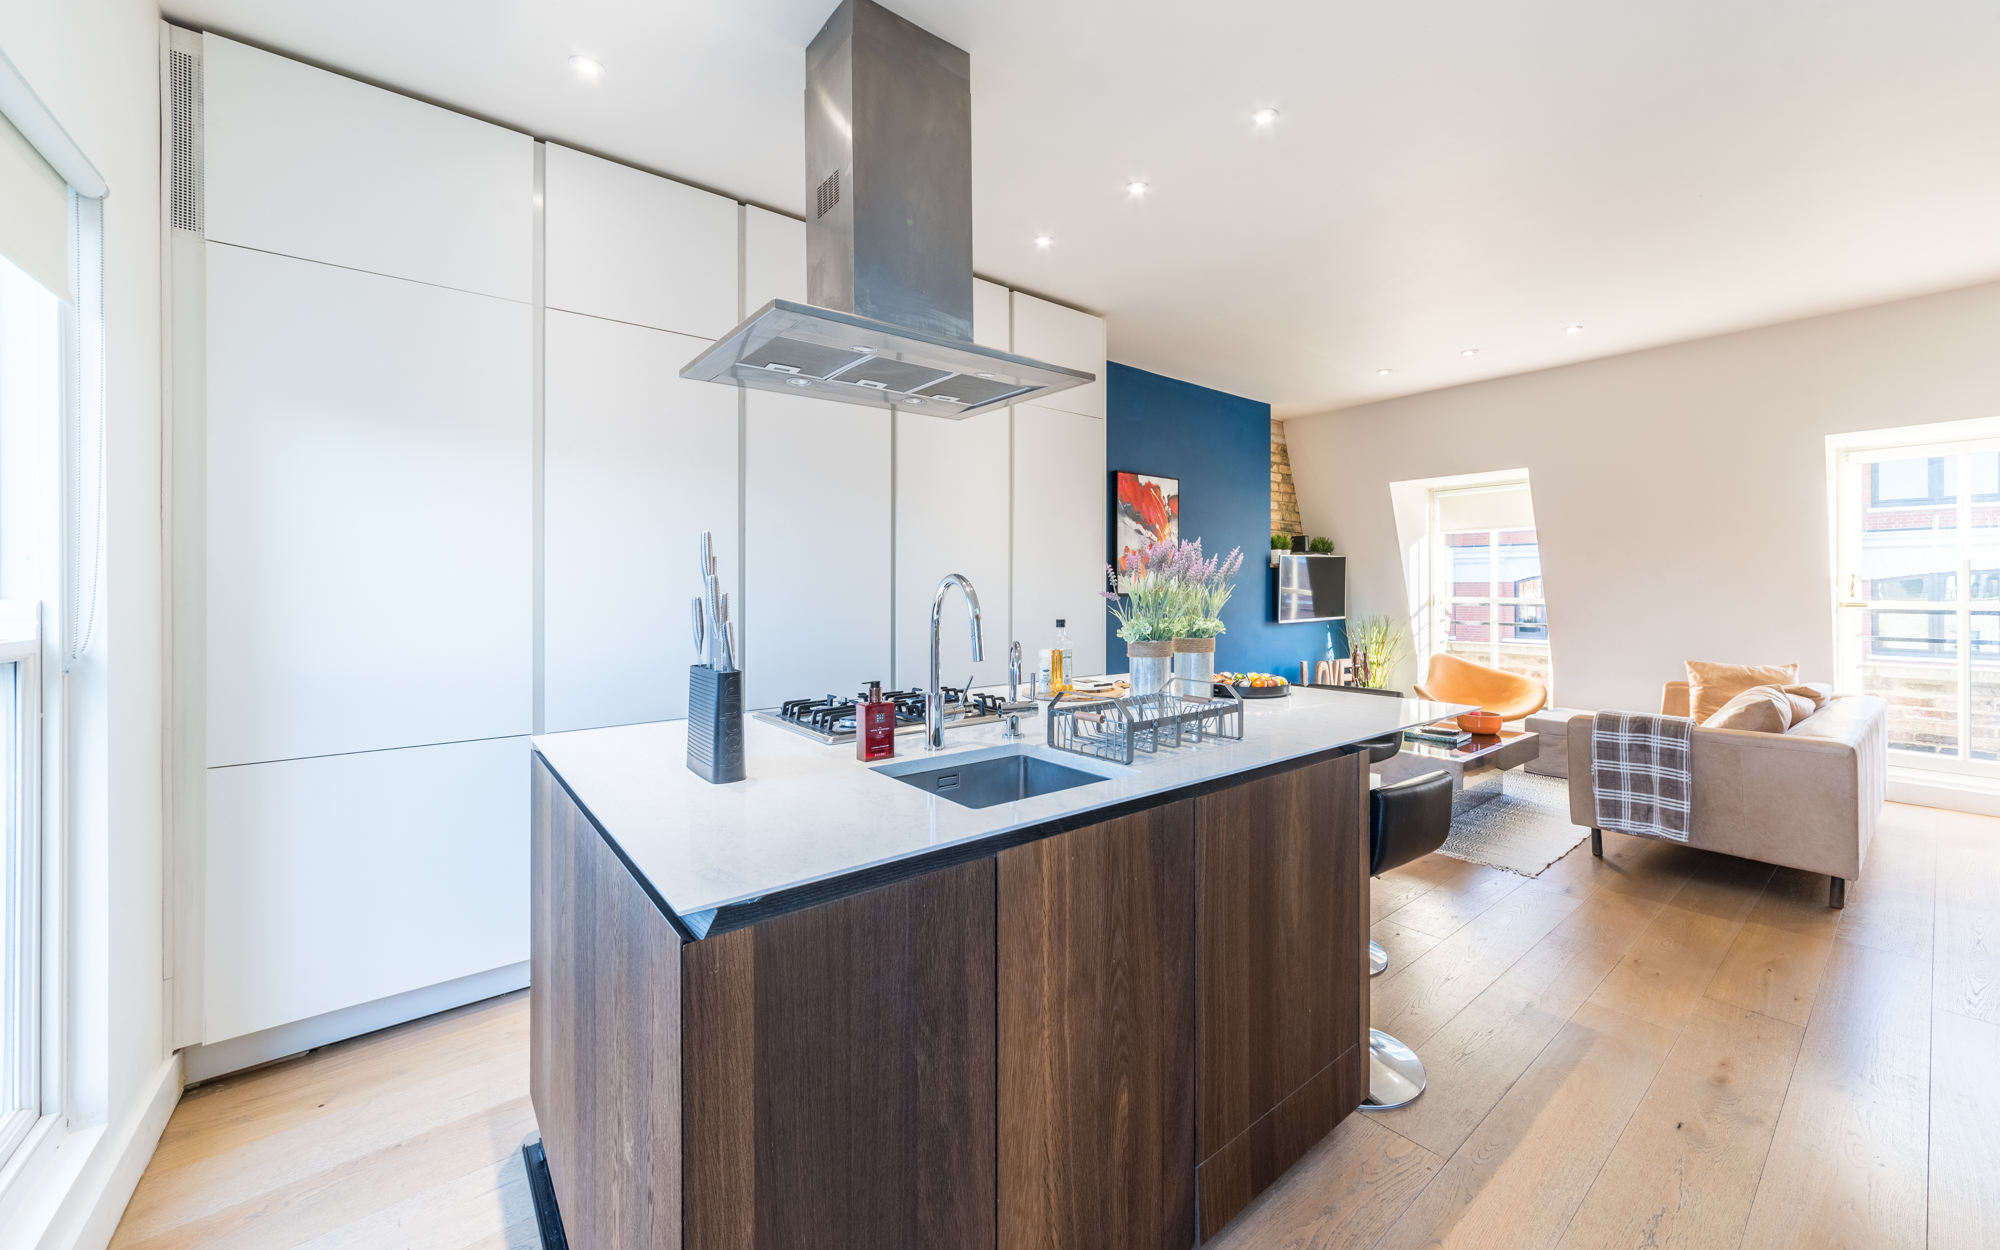 Lovelydays luxury service apartment rental - London - Fitzrovia - Foley Street II - Lovelysuite - 2 bedrooms - 2 bathrooms - Luxury kitchen - ca3c614e5ace - Lovelydays